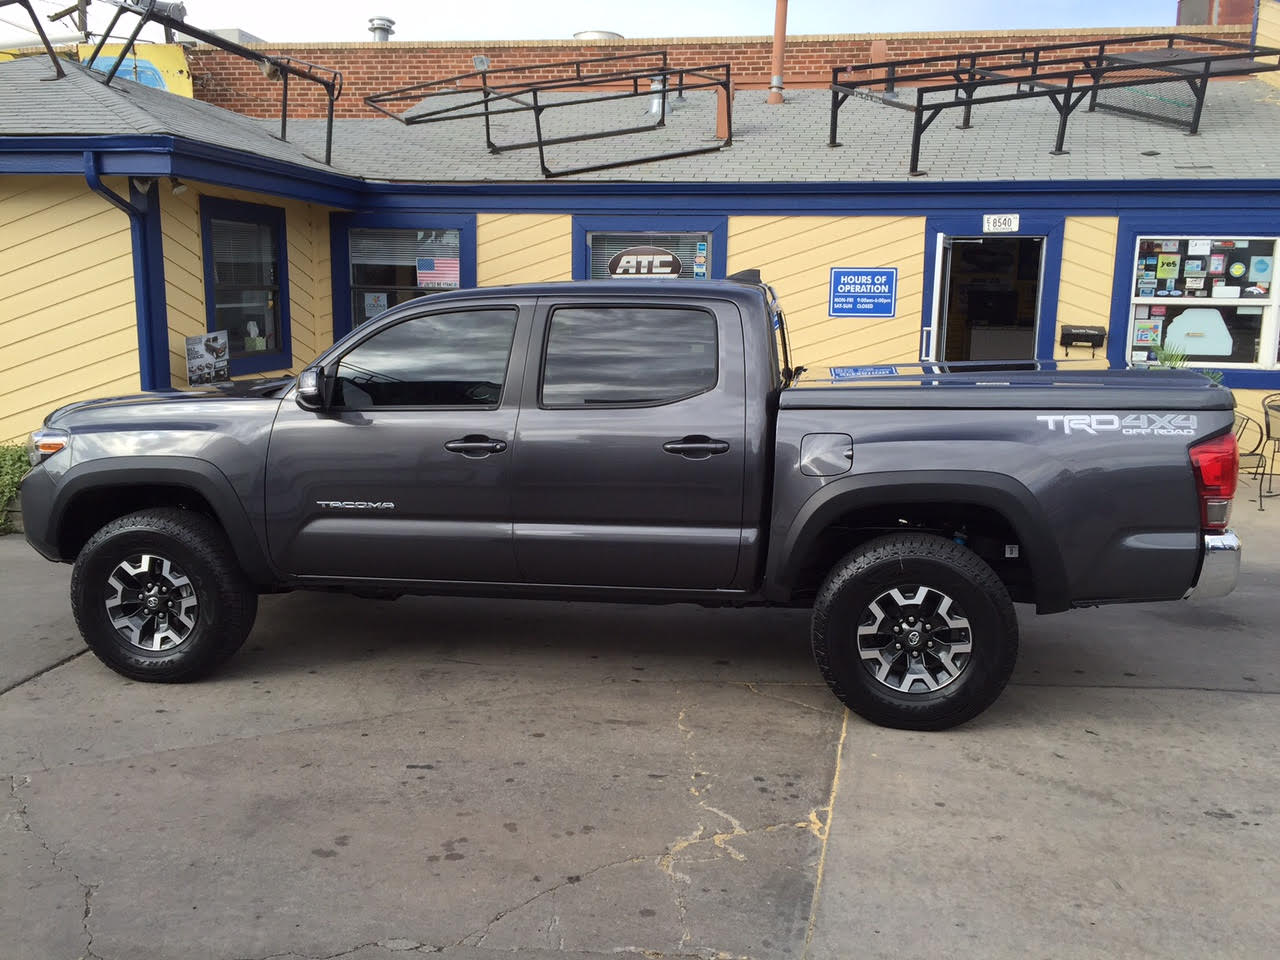 Chevy Colorado Off Road Accessories 2016-Toyota-Tacoma-ARE-lid-profile - Suburban Toppers